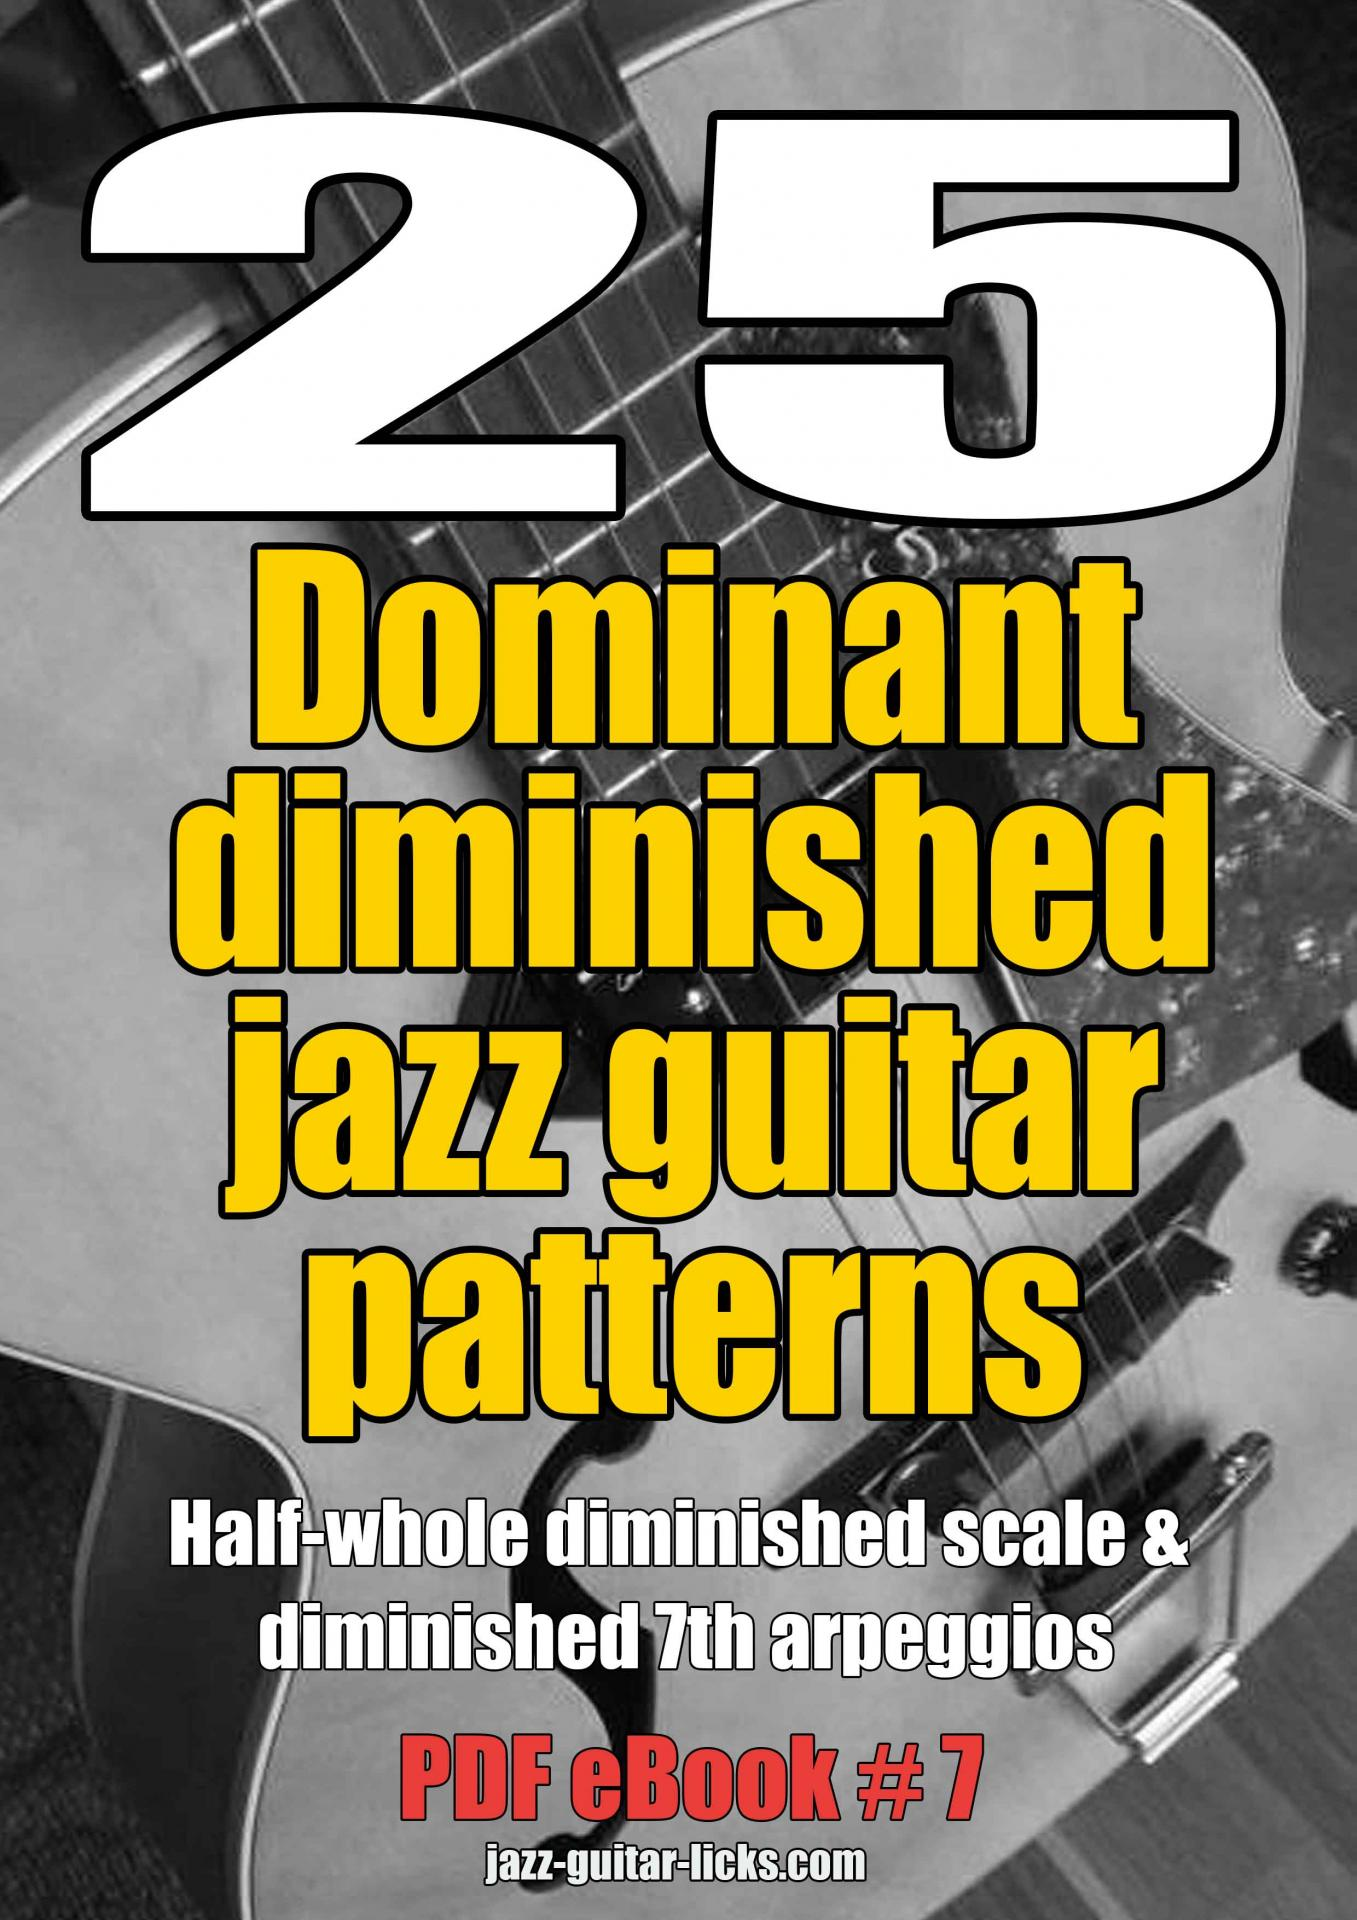 25 half whole diminished jazz guitar licks and diminished 7th arpeggios